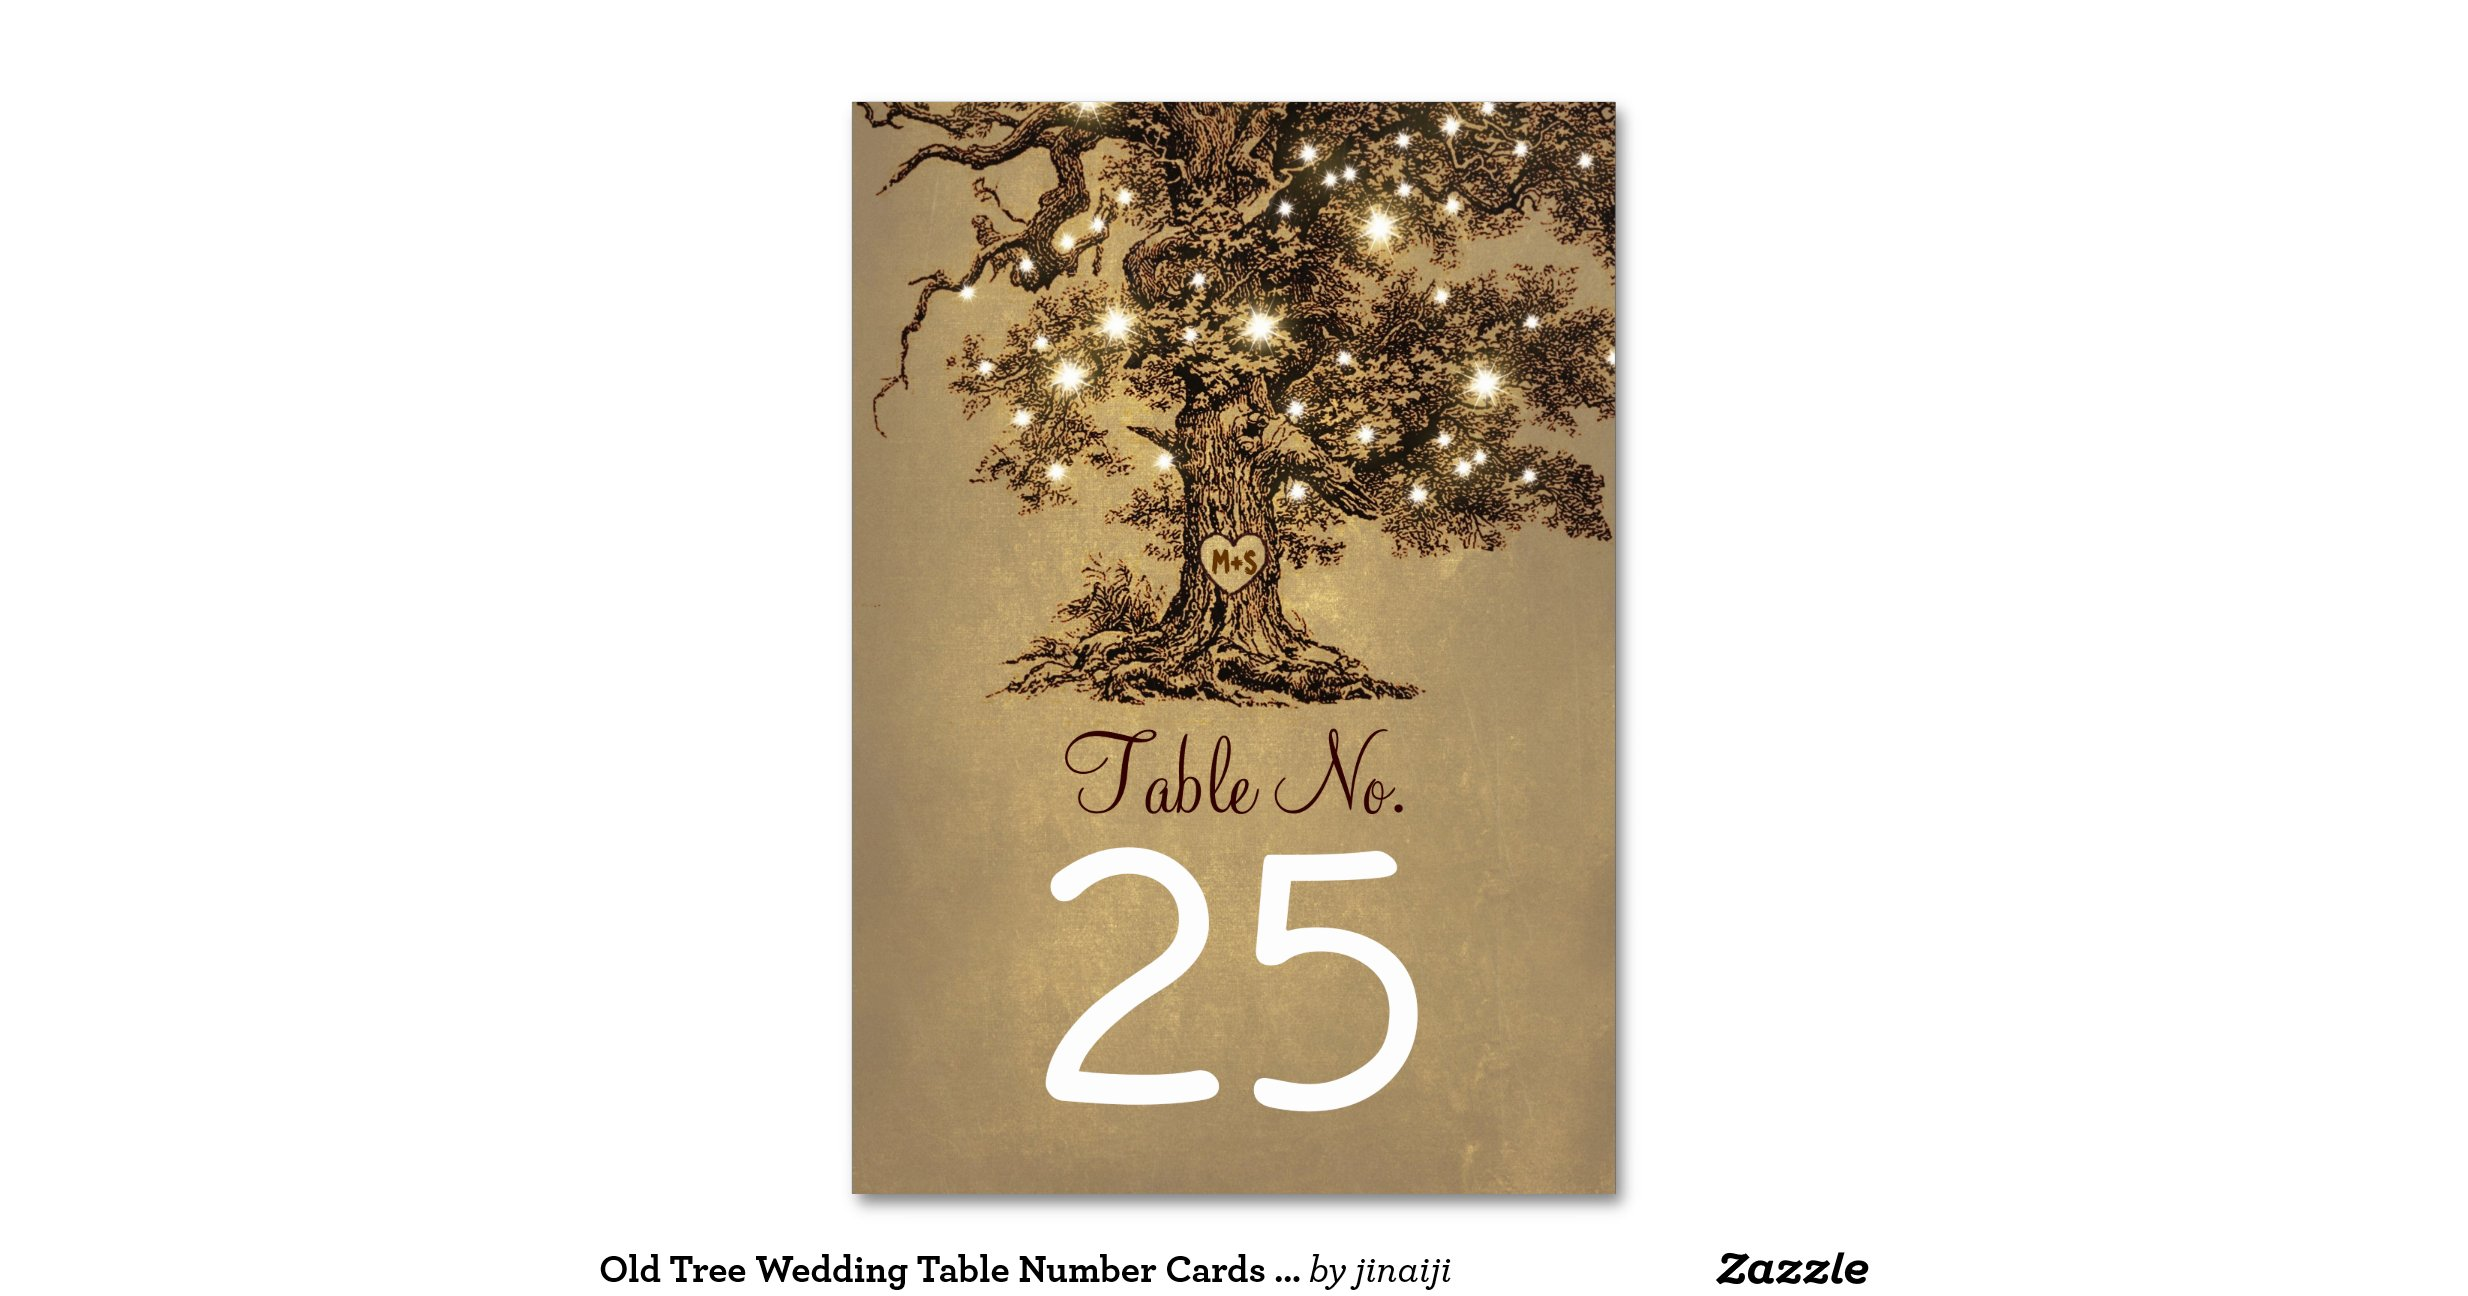 Old Tree Wedding Table Number Cards Place Cards Table Card R34d8871488134f1797885b58e60b5d60